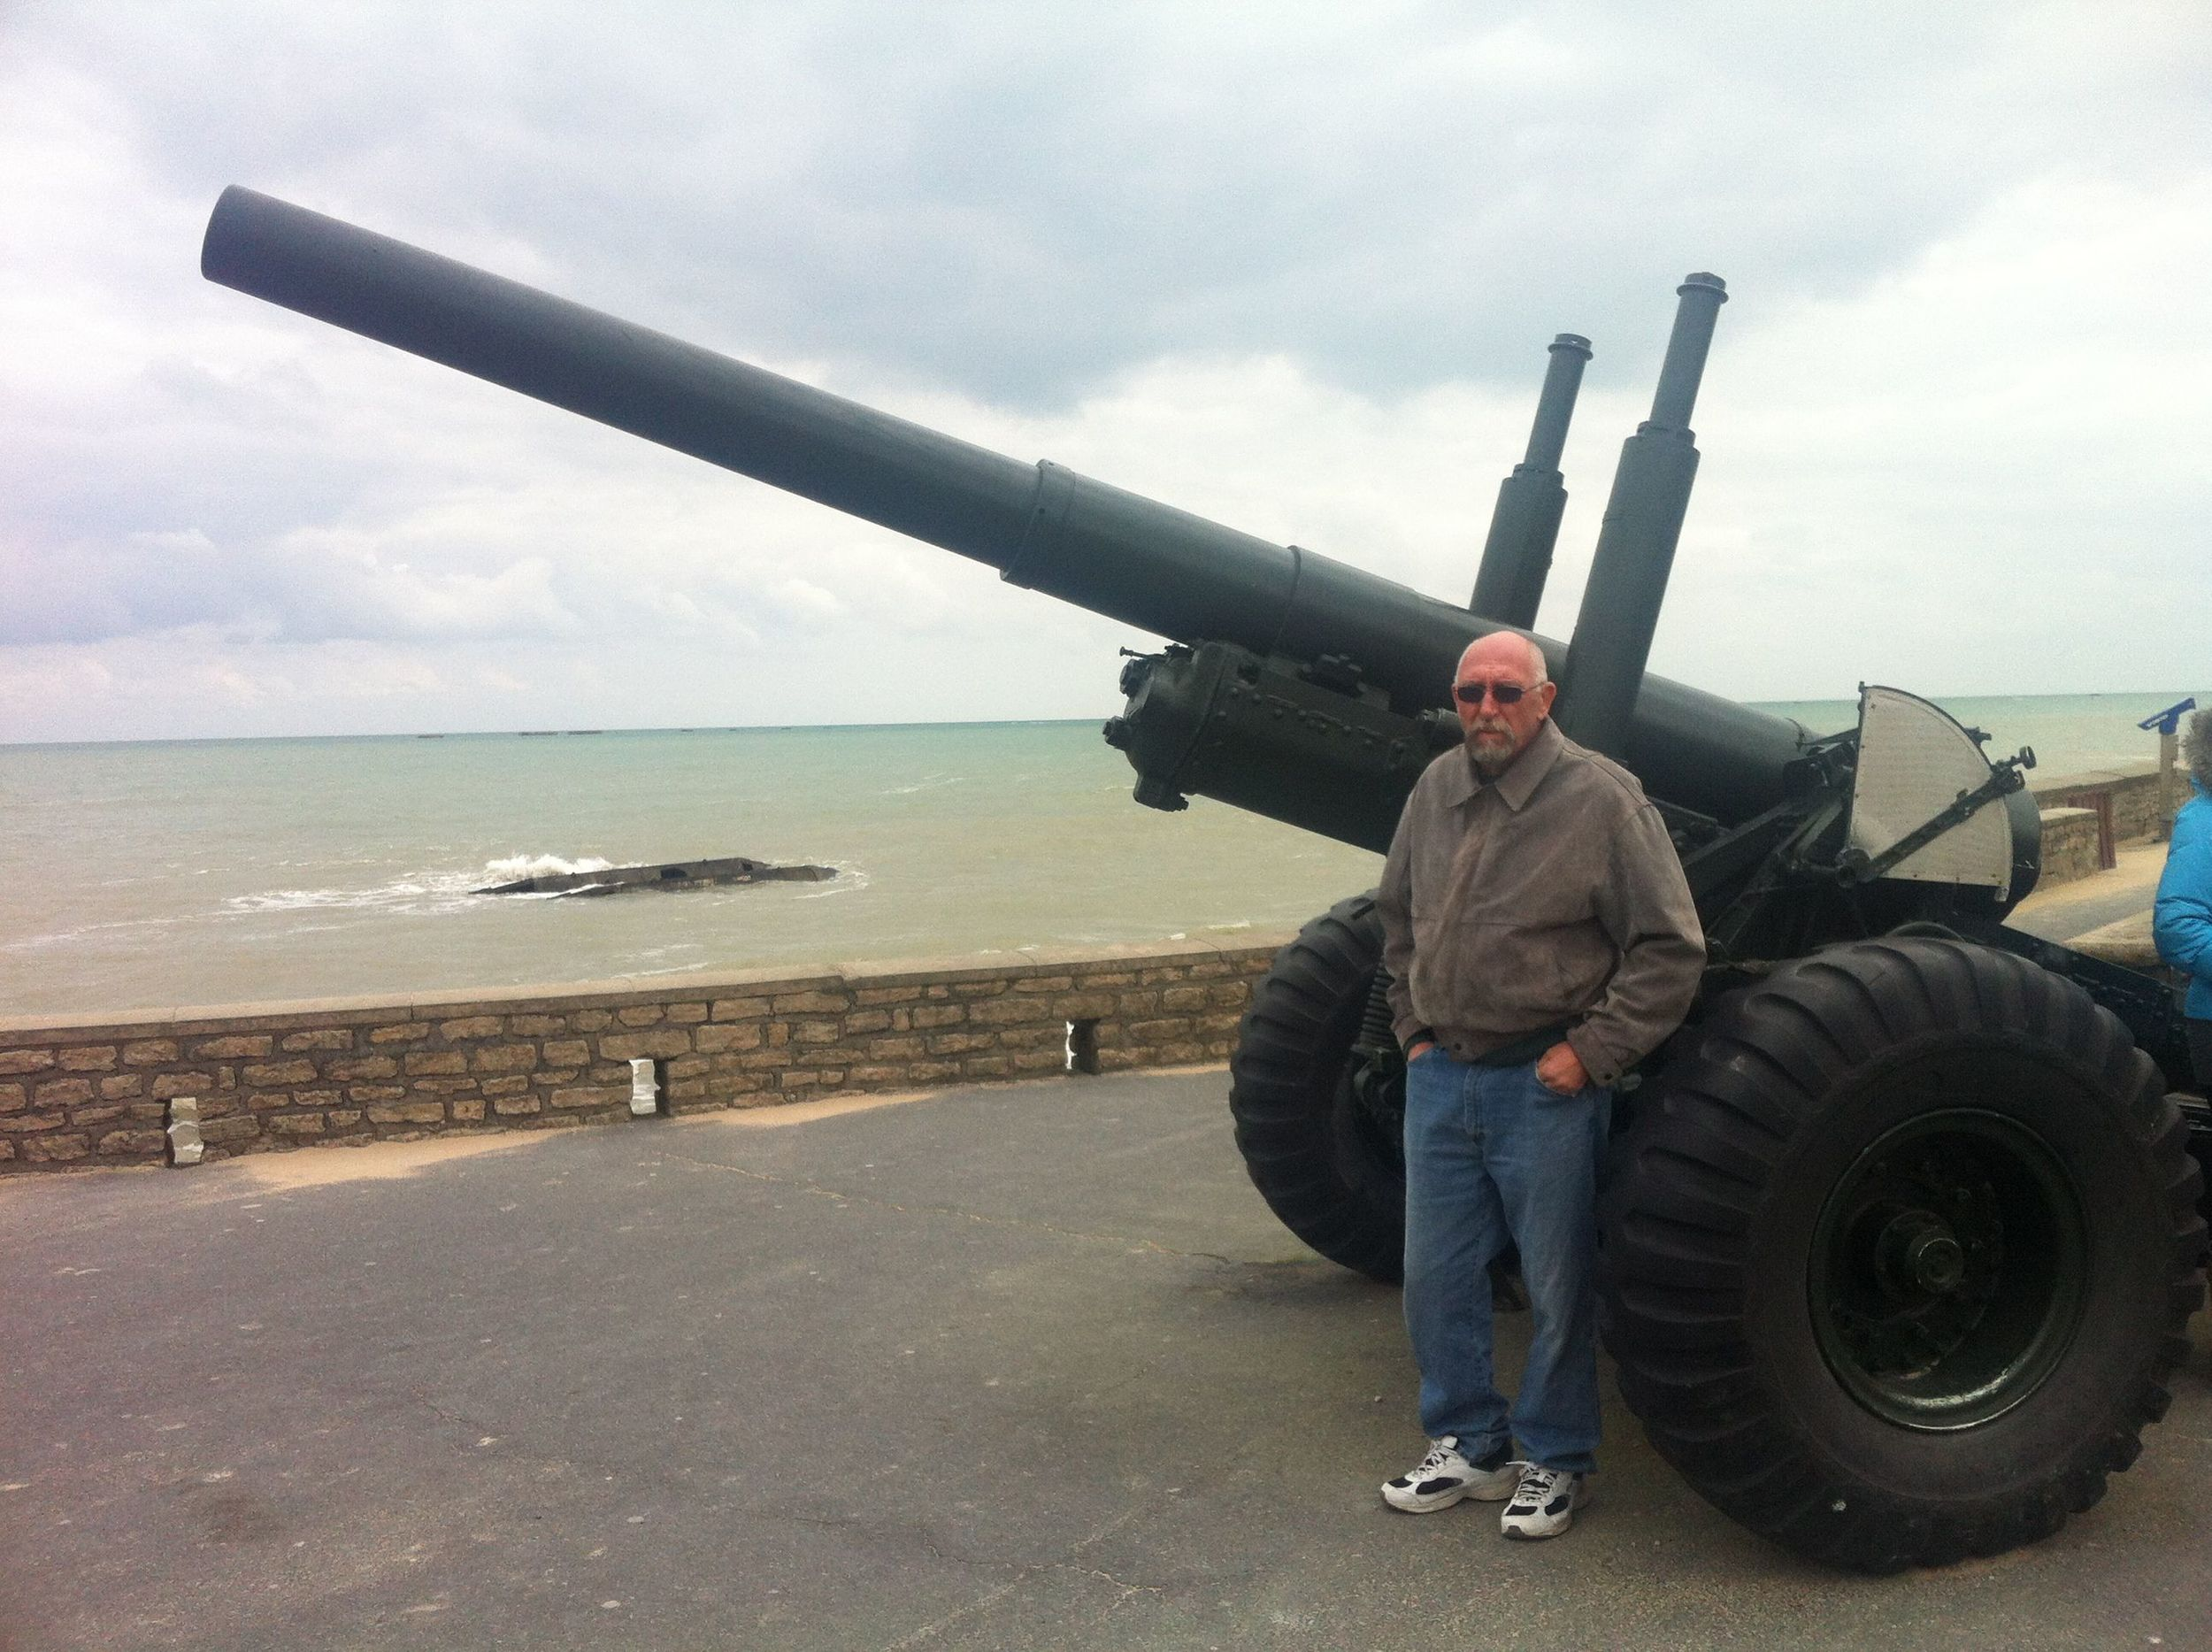 My dad at Gold Beach, Normandy